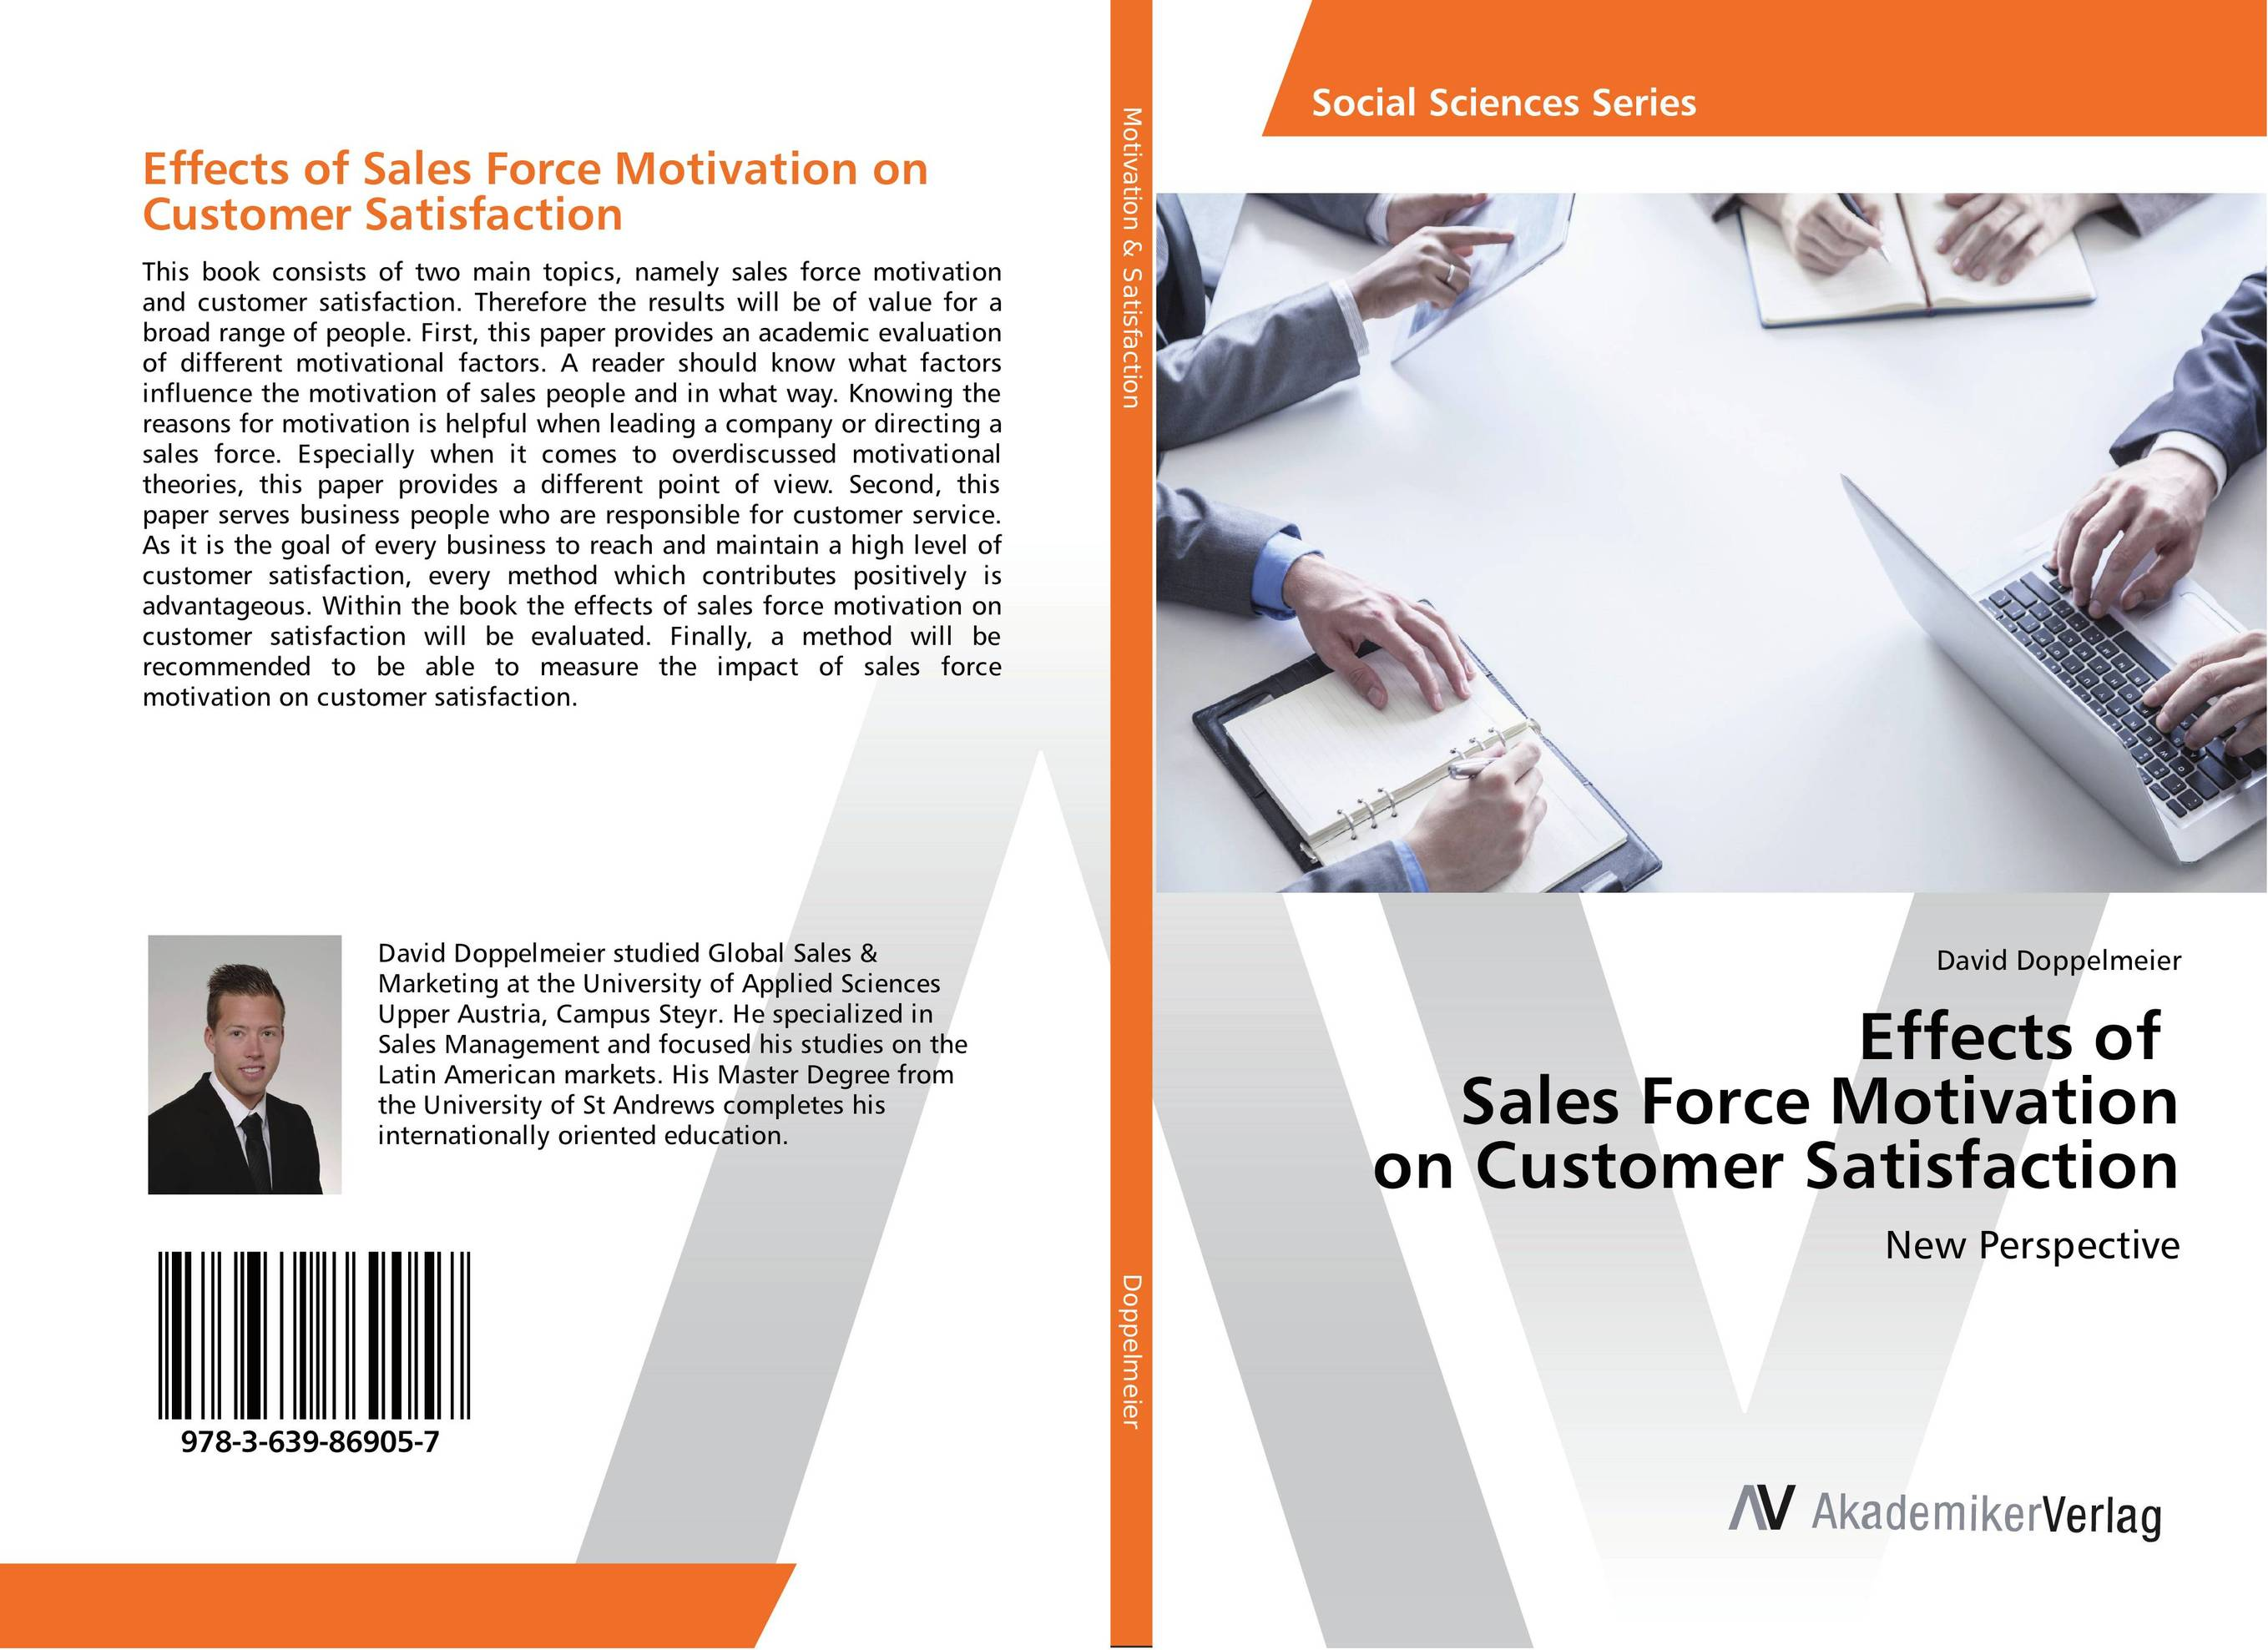 Effects of Sales Force Motivation on Customer Satisfaction